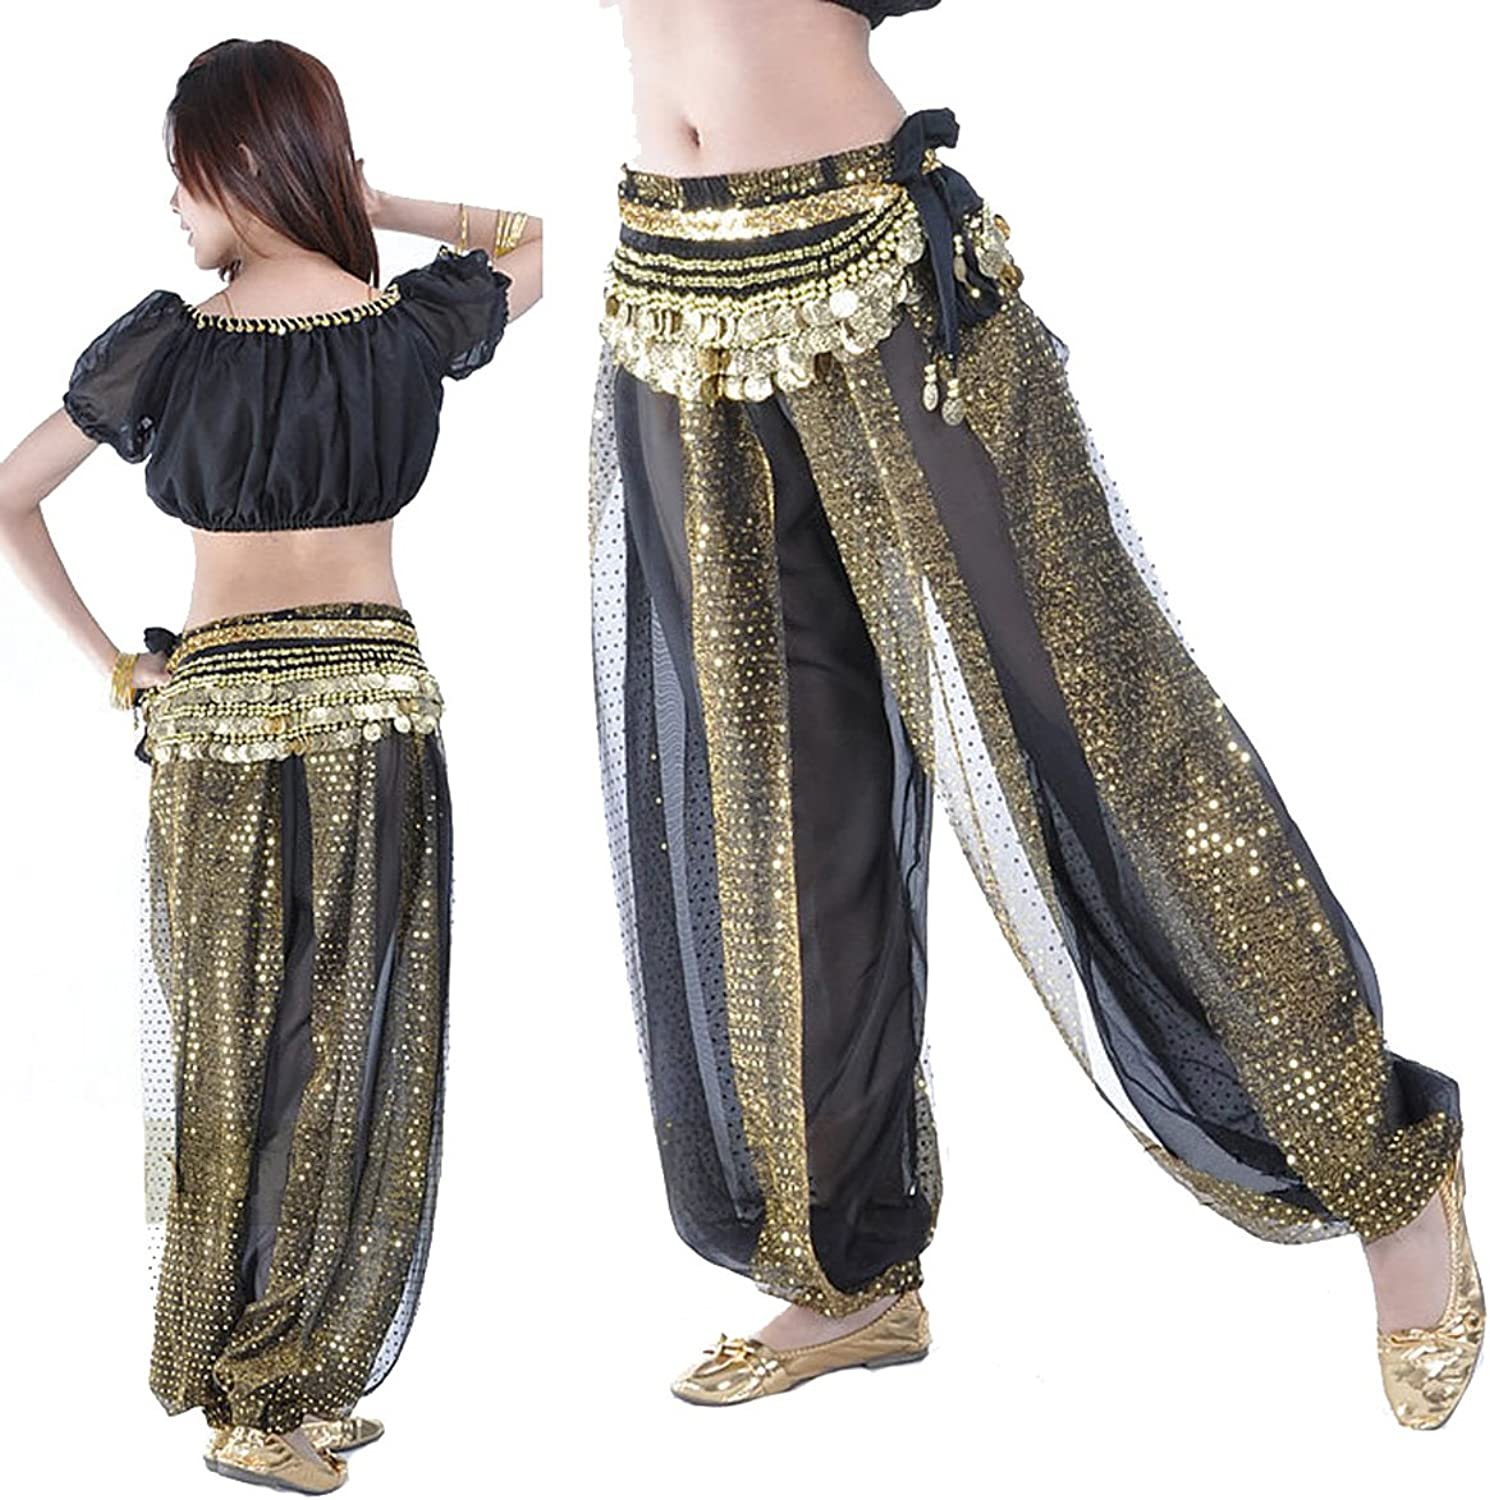 Belly Indian Dance Performance Clothing